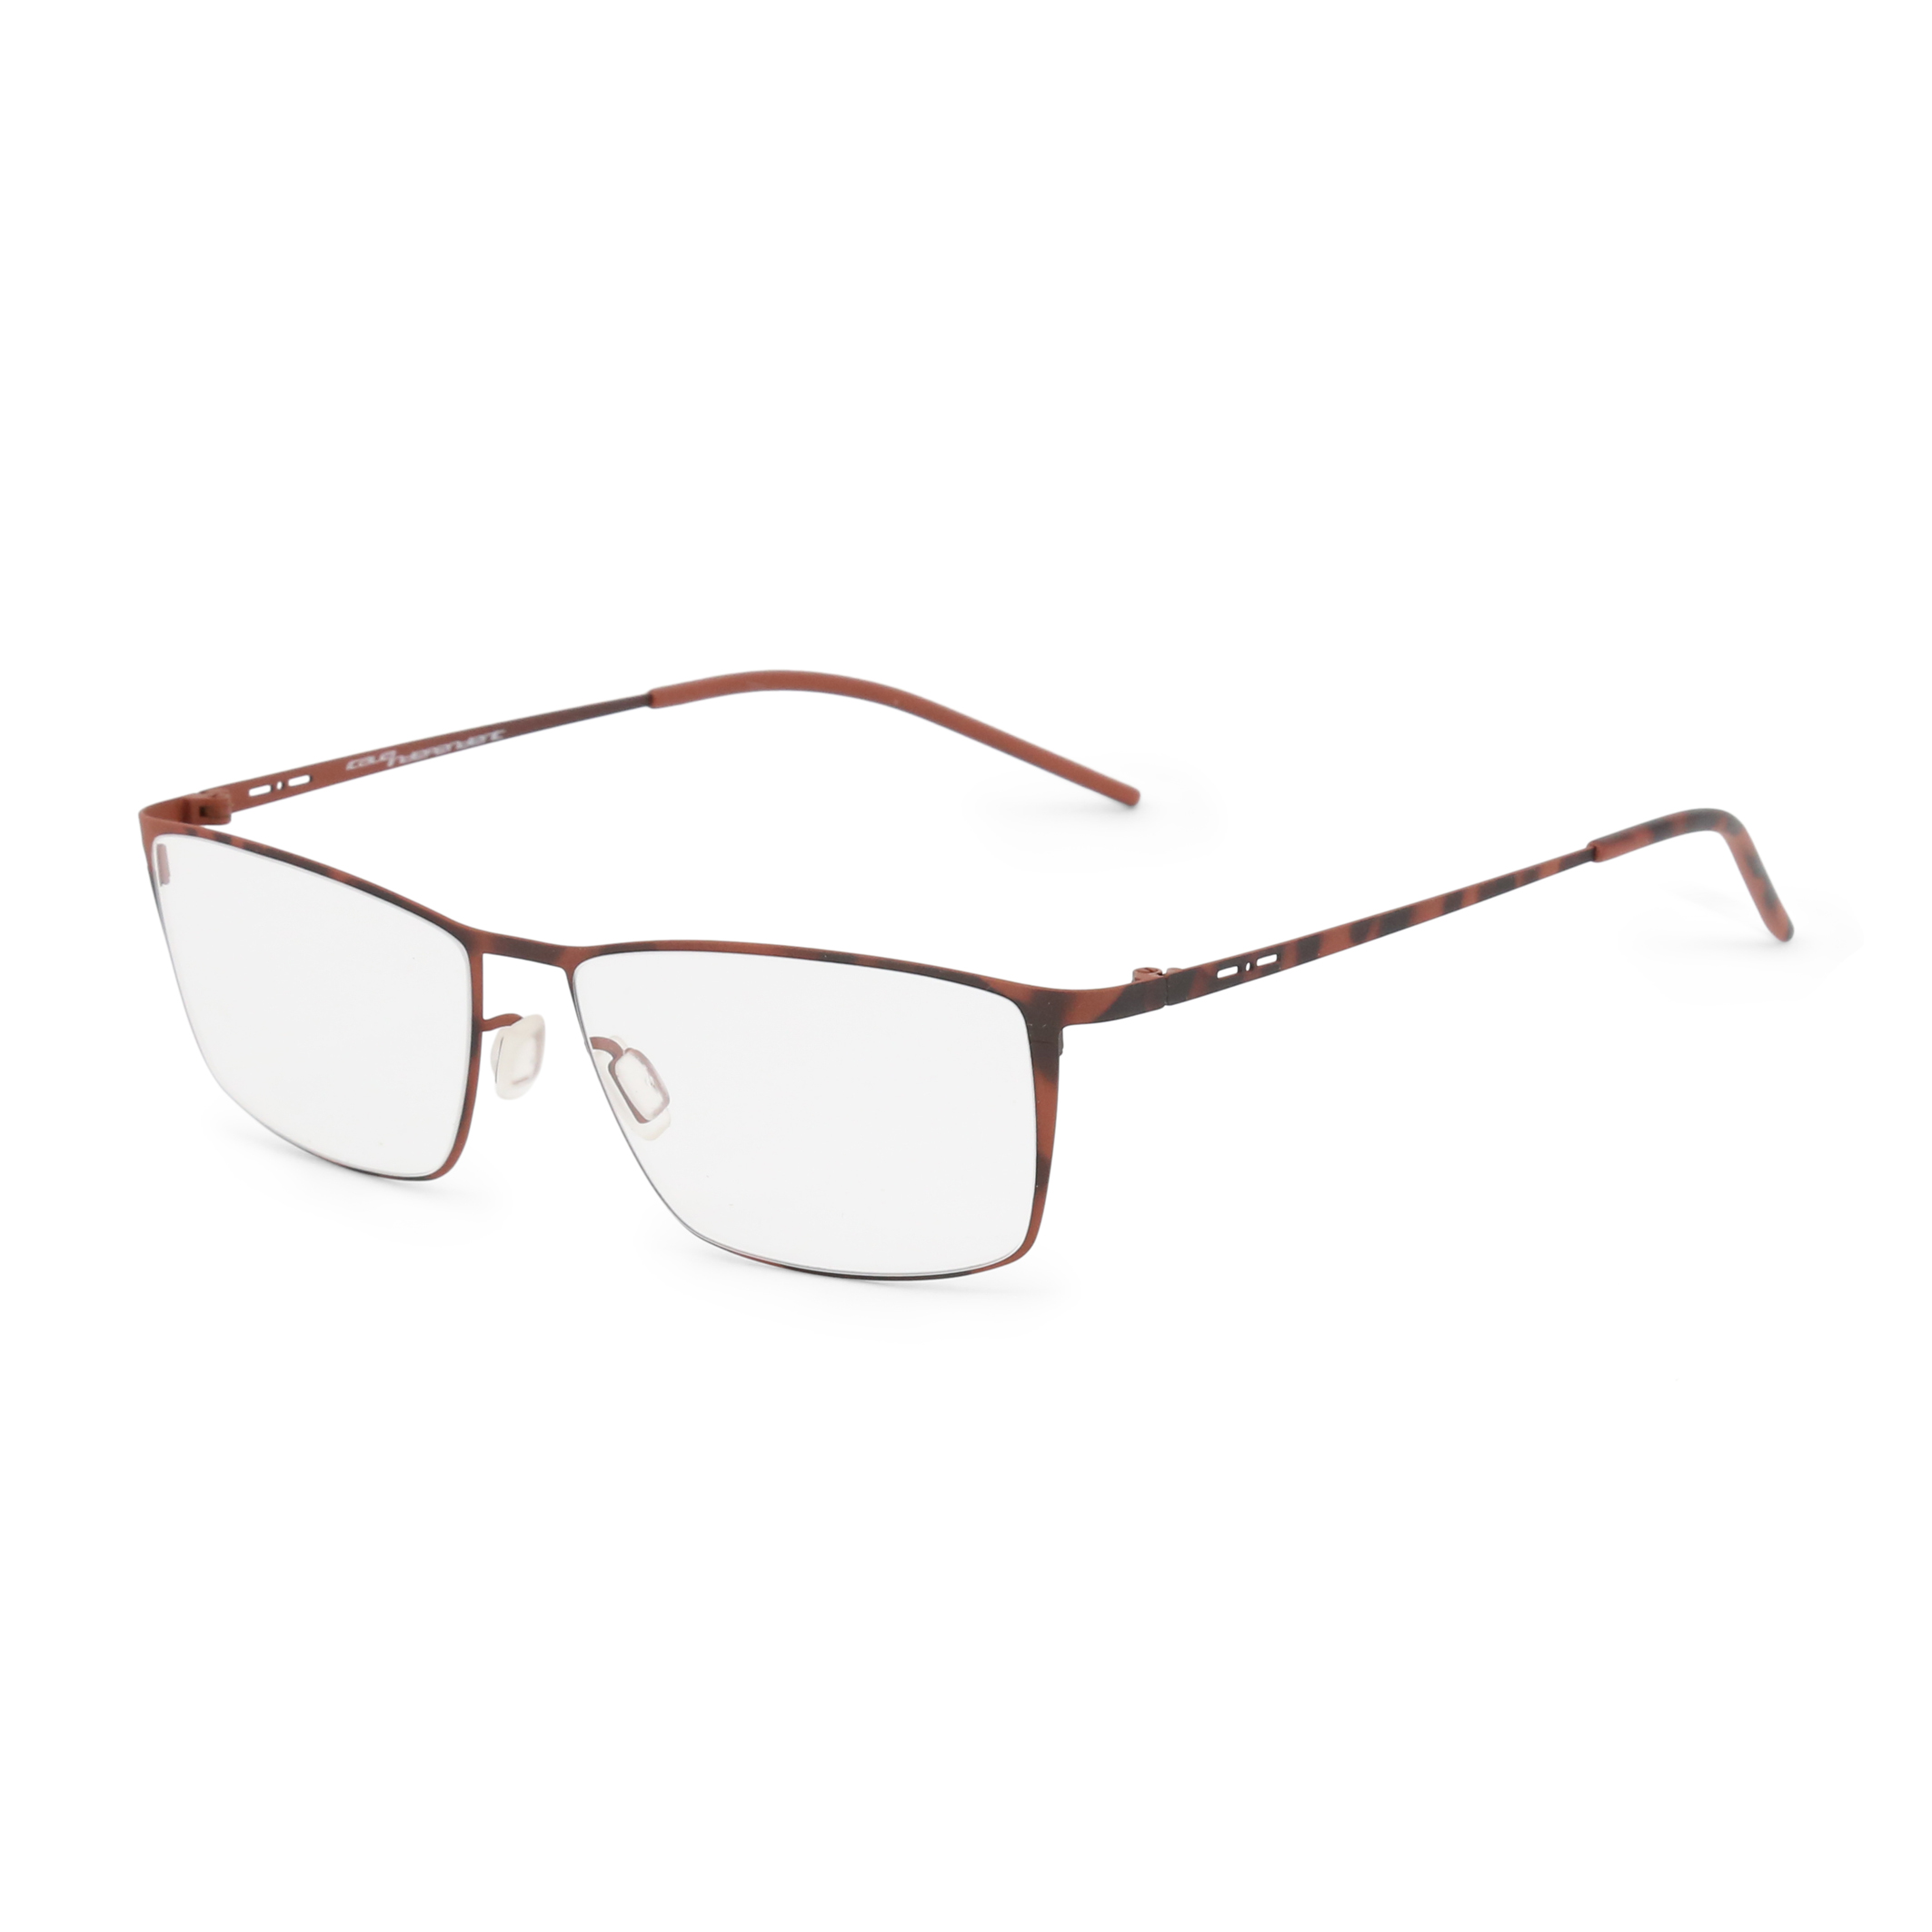 Lunettes Italia Independent – 5201A